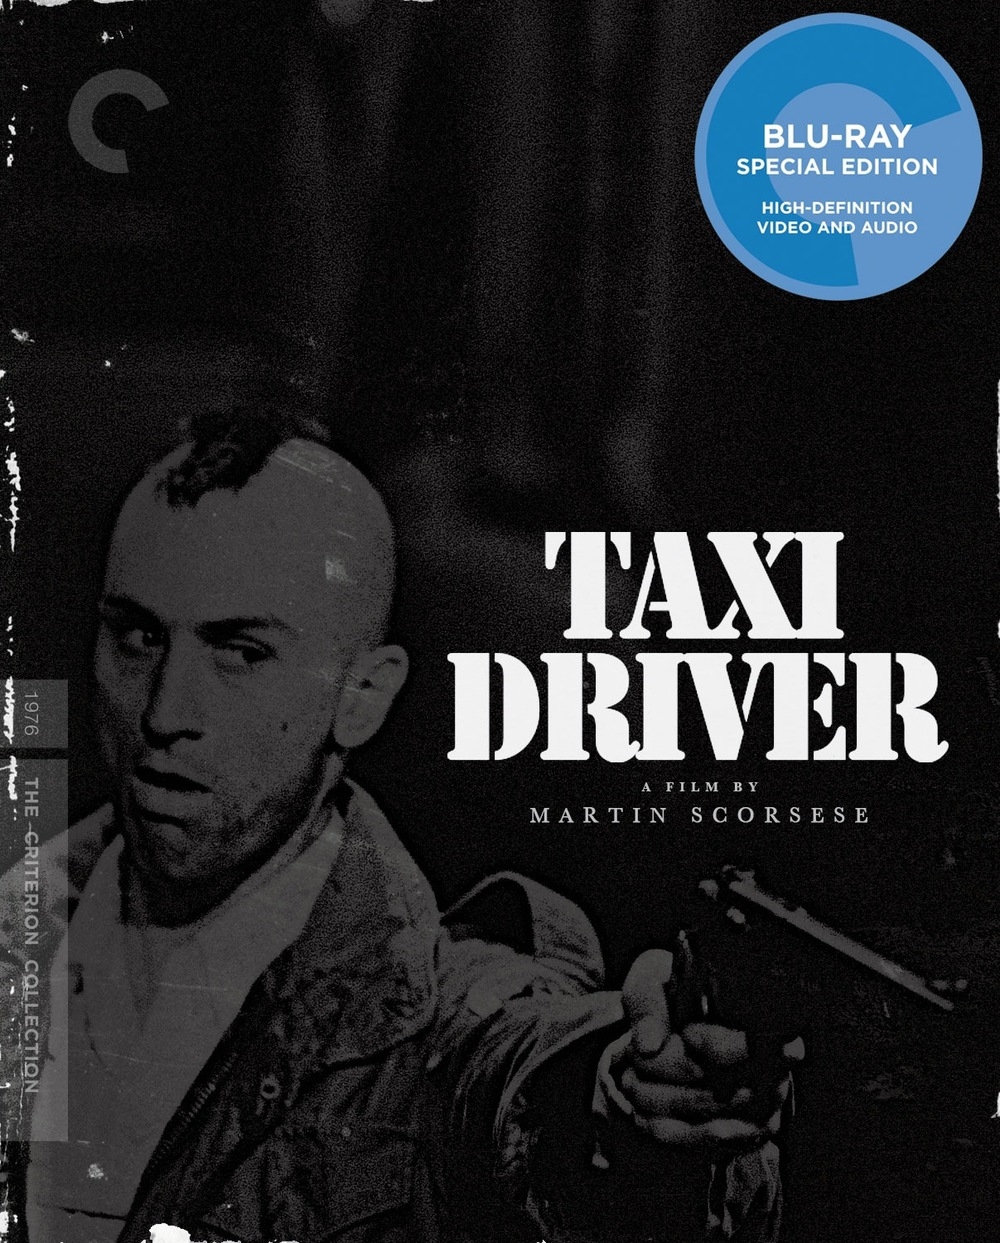 Taxi_Driver-Robert_Deniro-movie_poster-08-iznogoodgood.jpeg